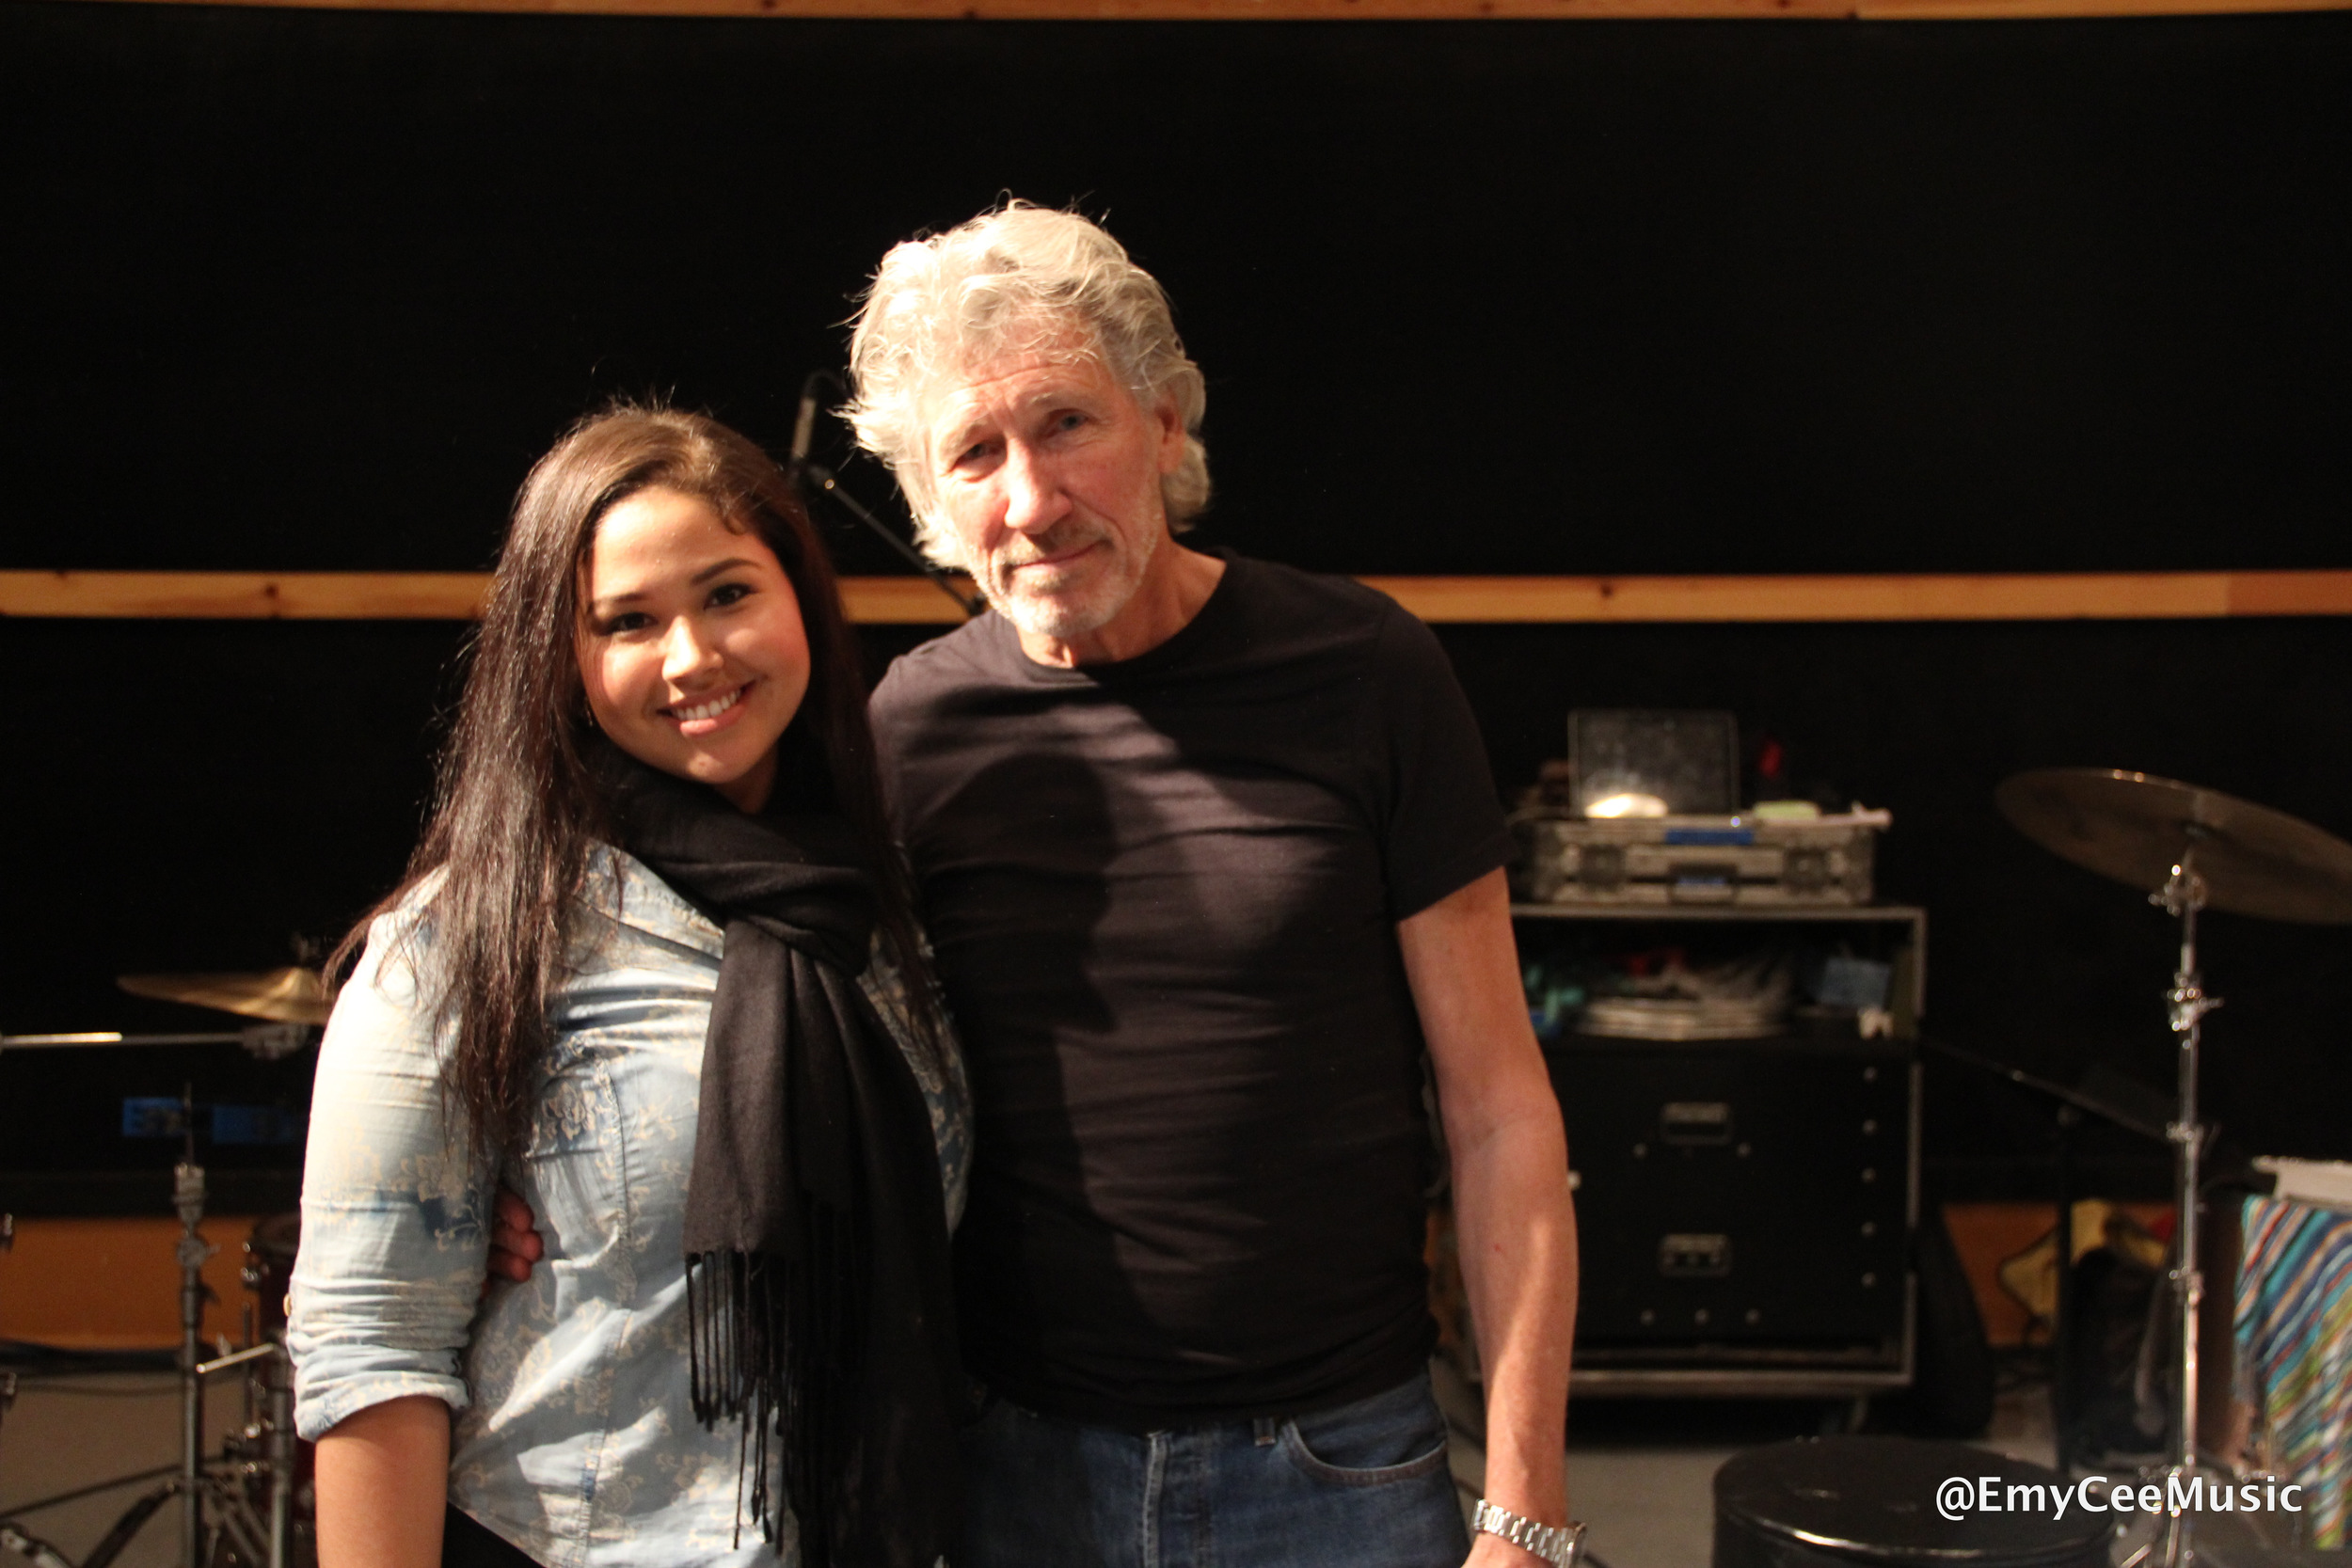 Emy Cee with Roger Waters